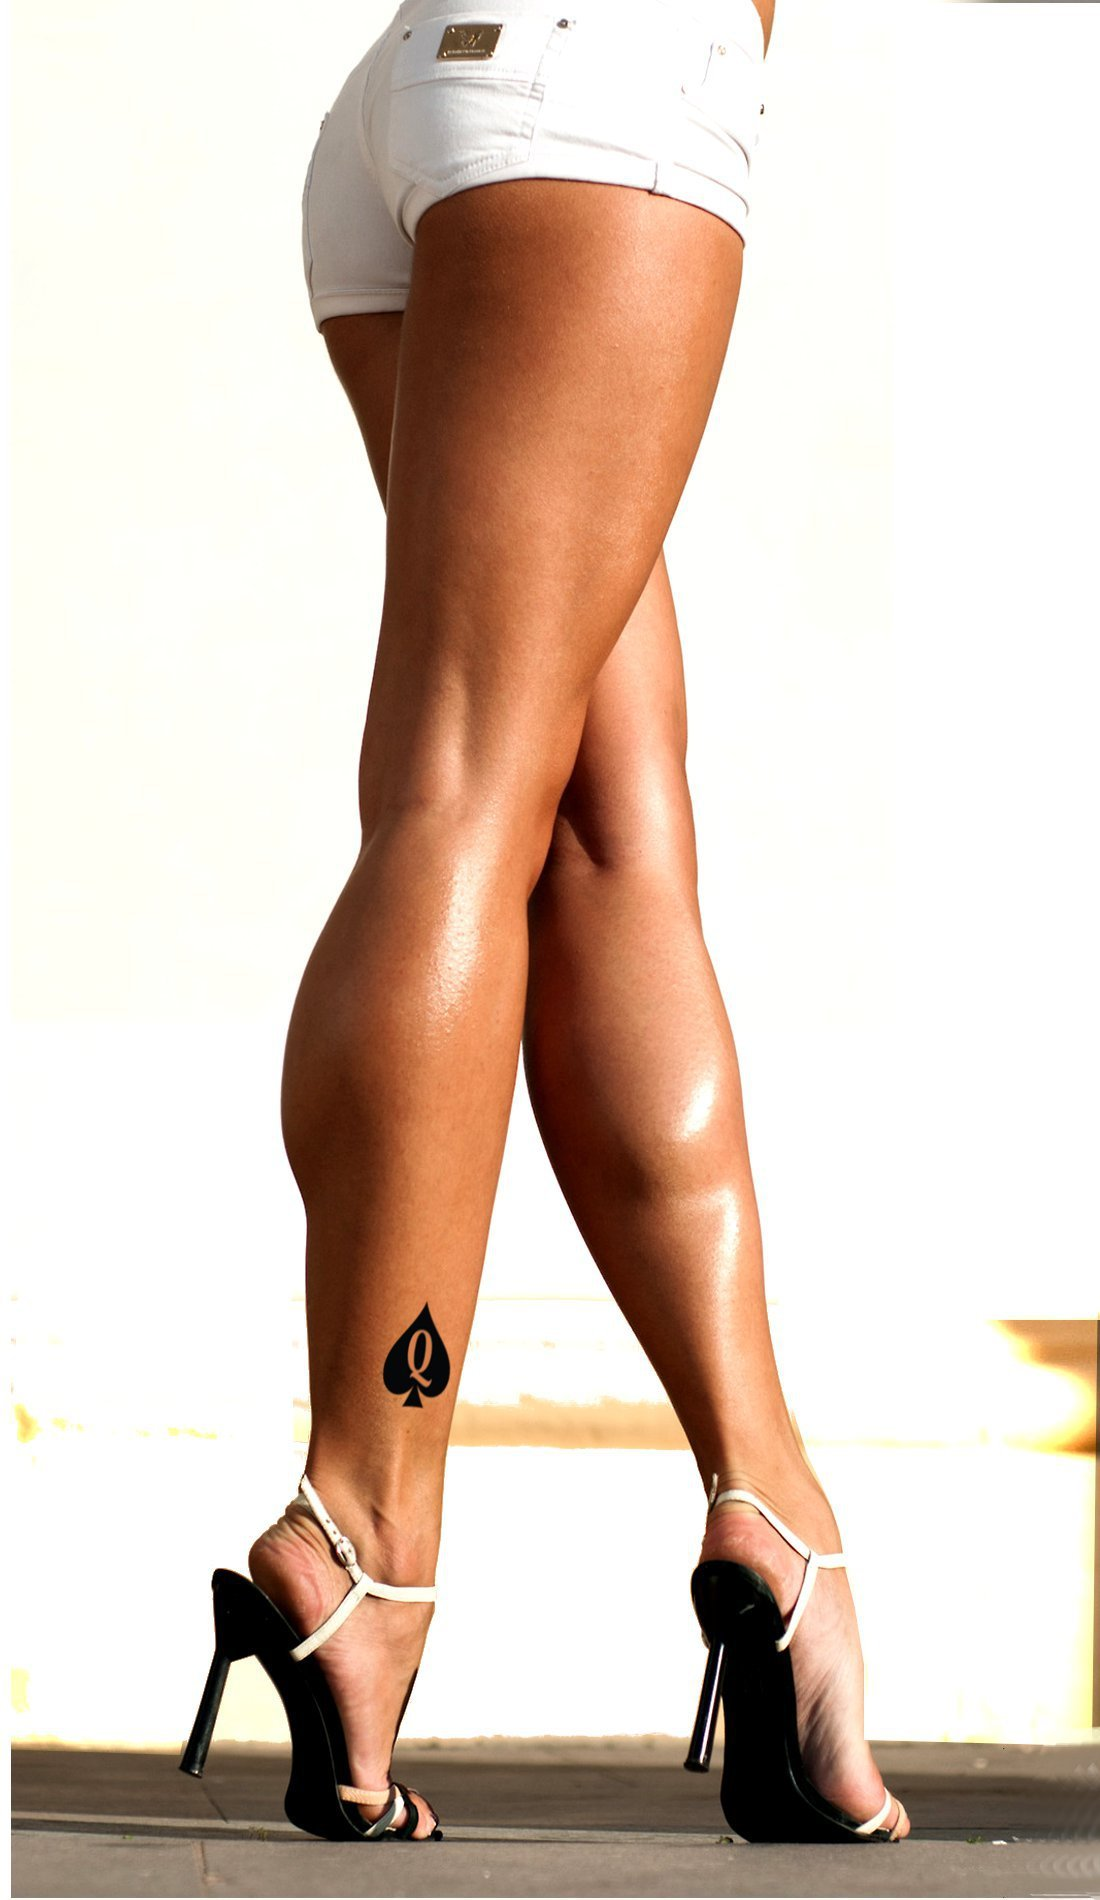 15 X Thick Queen of Spades Temporary Tattoos - Hotwife